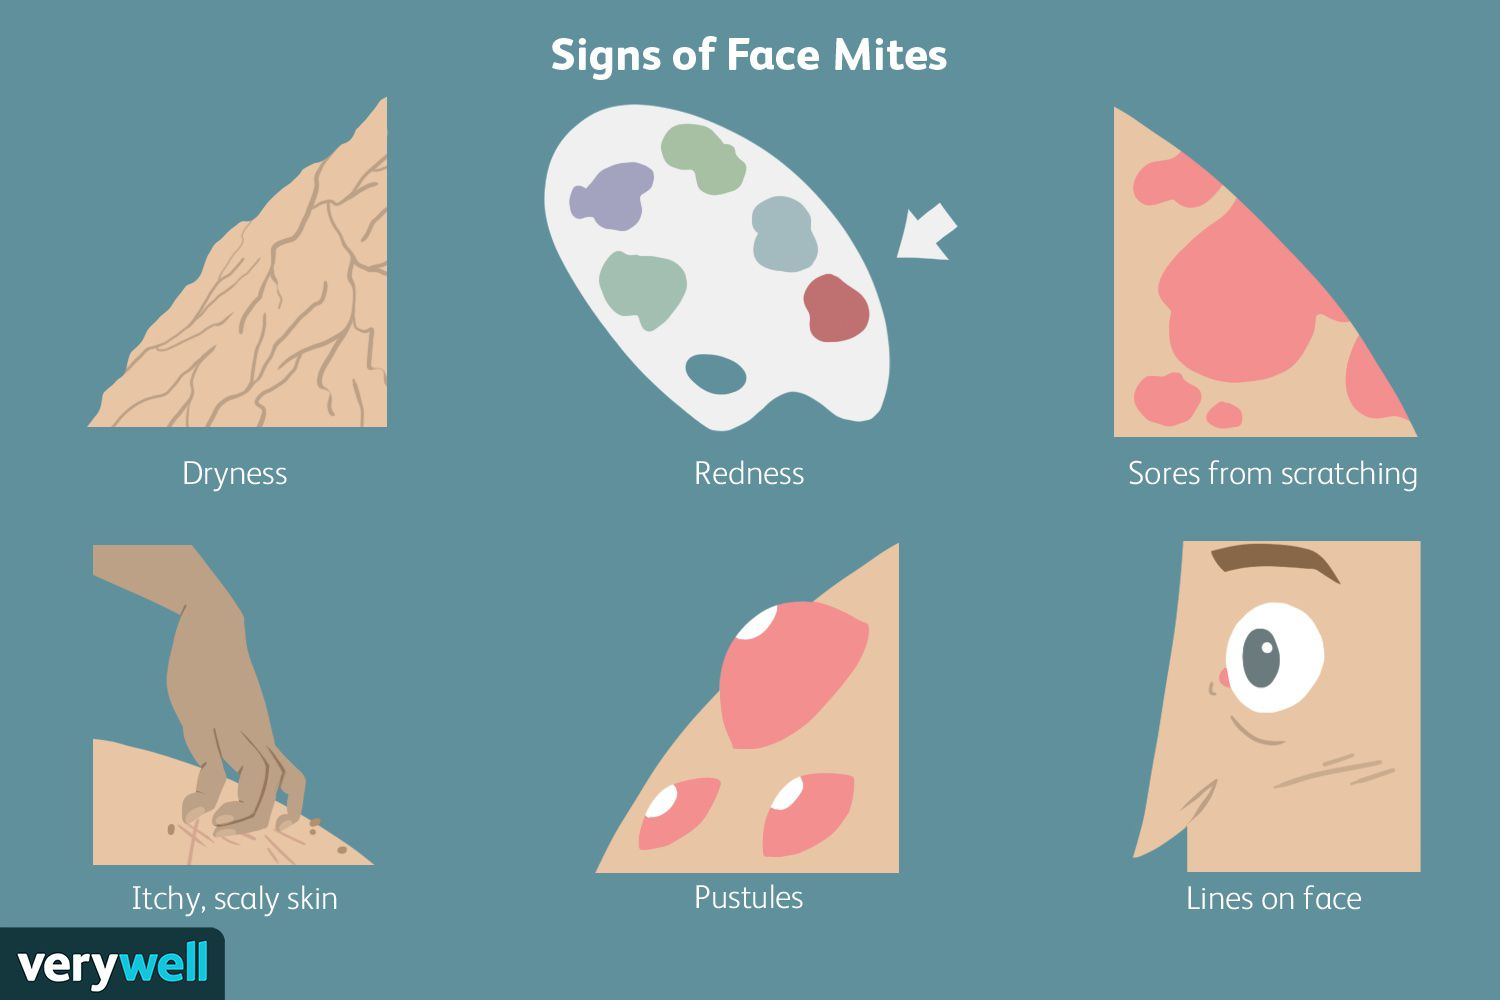 Signs of Face Mites